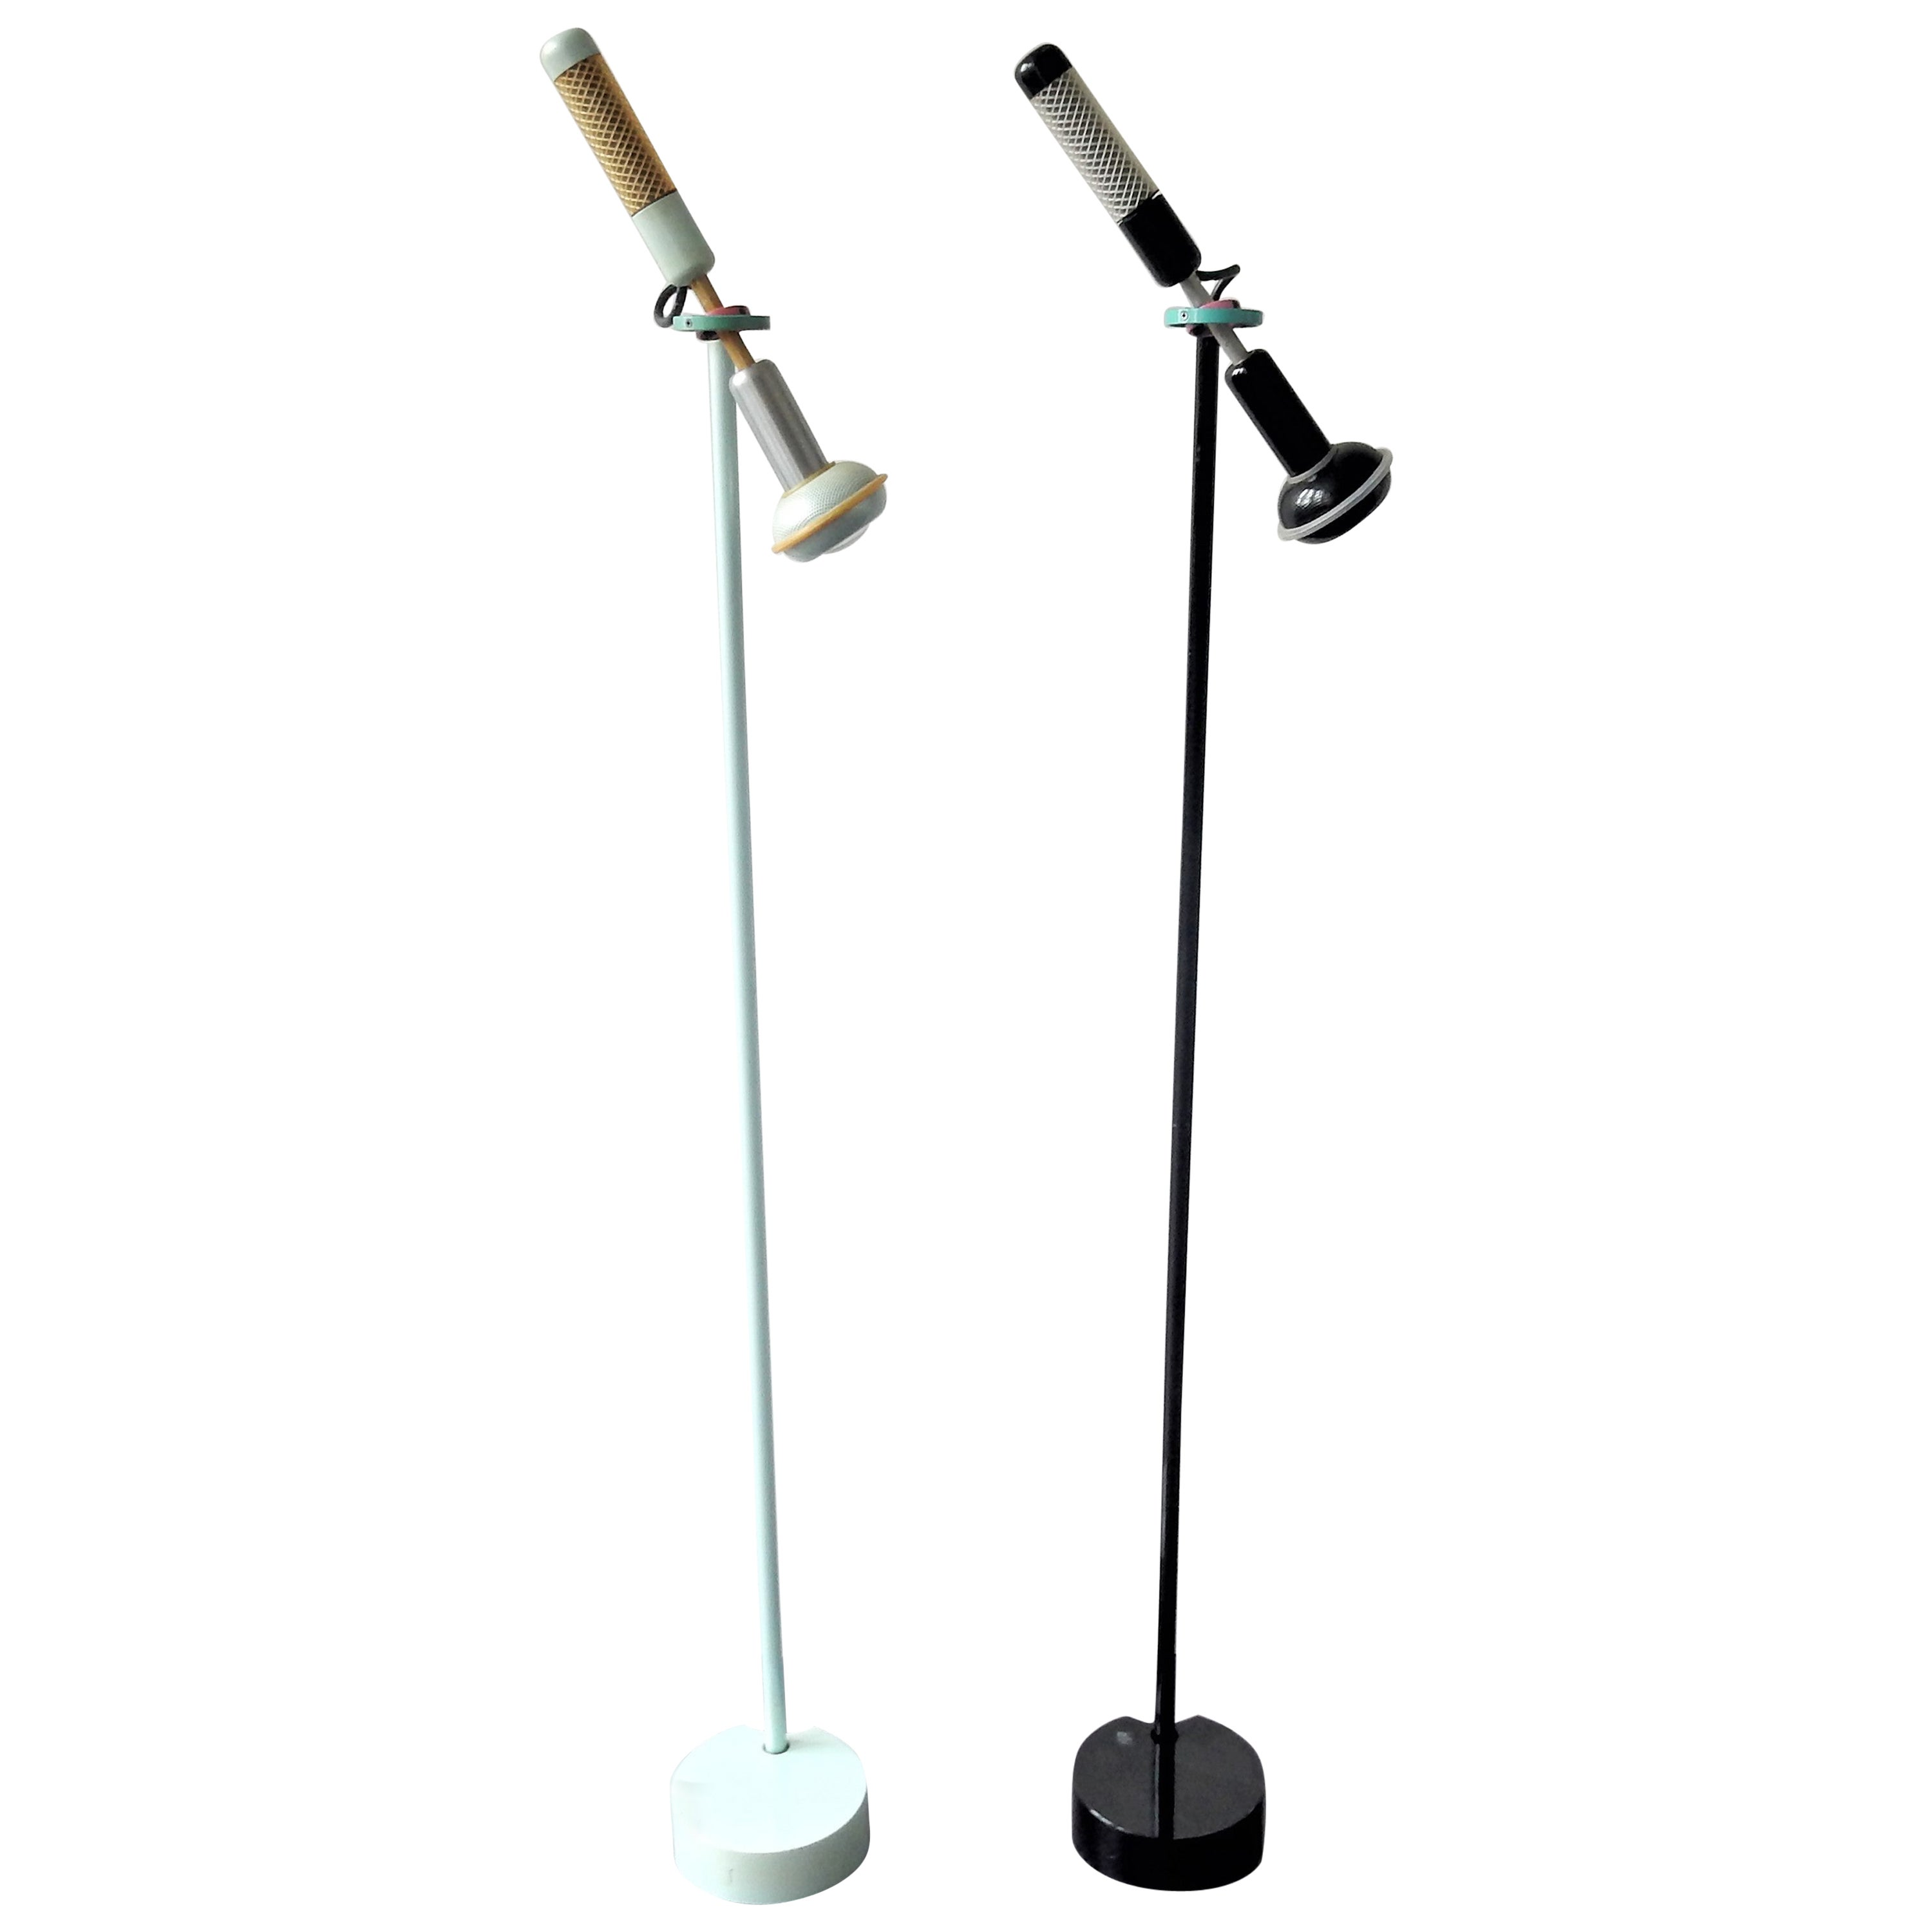 Black Grip Floor Lamp by Achille Castiglioni for Flos, Italy, 1985